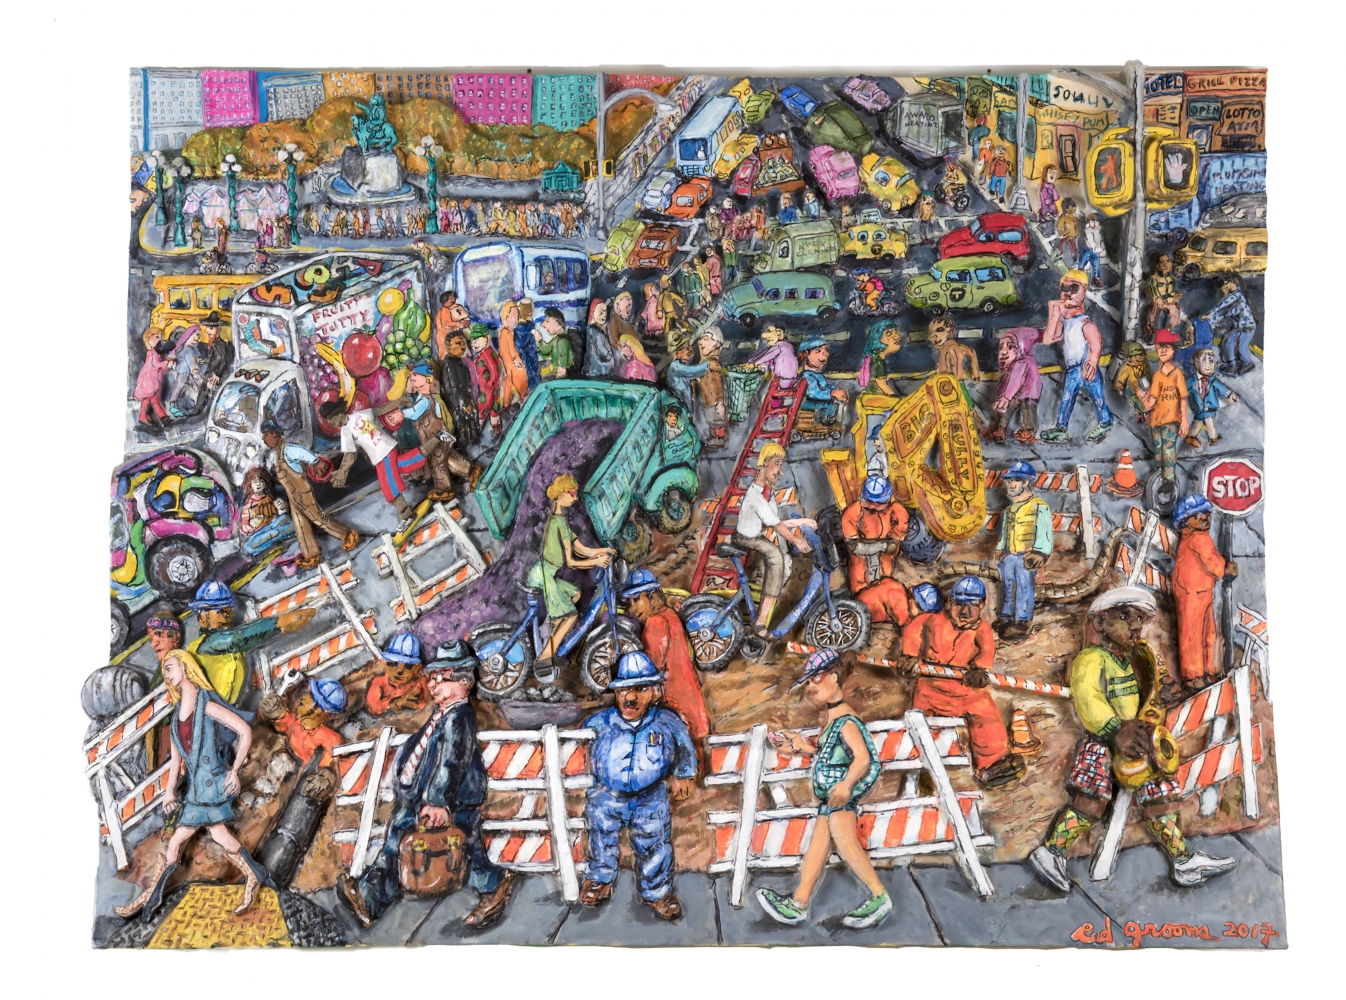 Colorful acrylic, ink, mixed media and epoxy mounted on wood work by Red Grooms featuring a bustling urban street scene with construction, people walking and car traffic